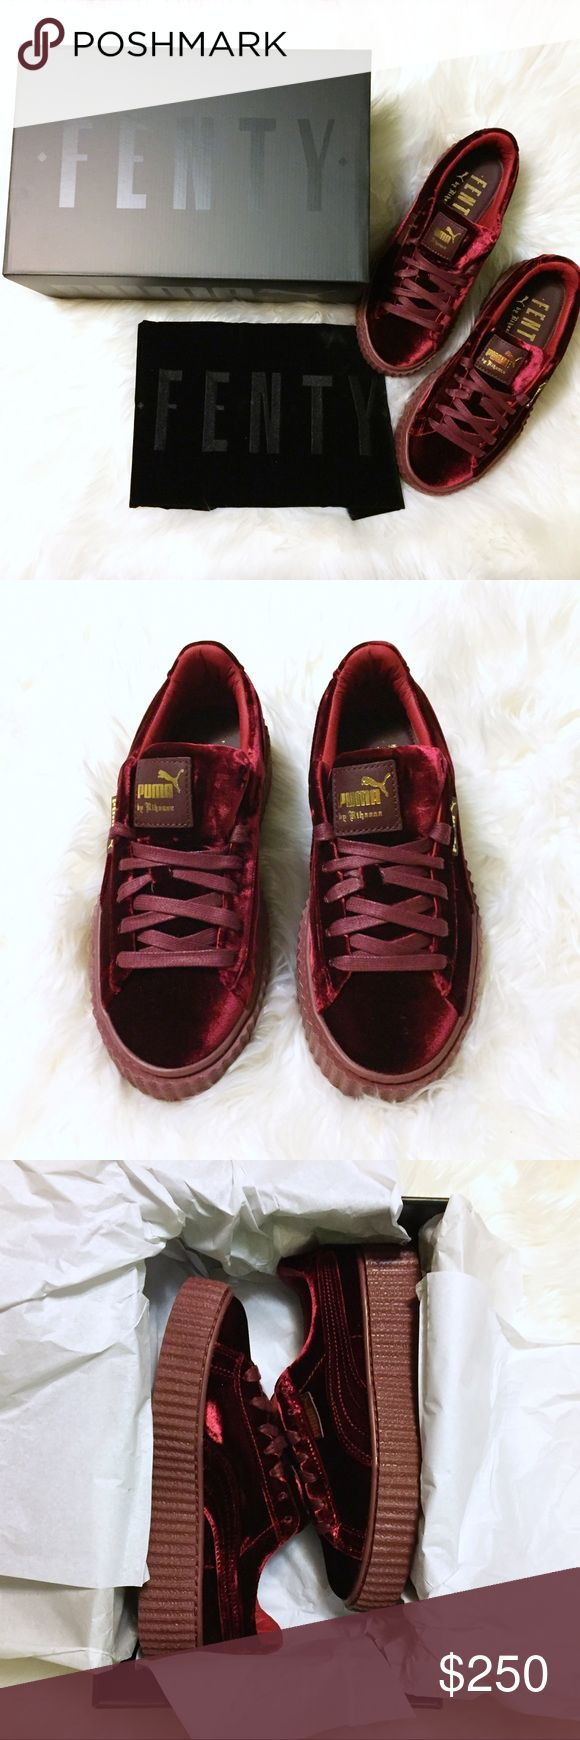 Fenty x PUMA Velvet Burgundy Creepers Fenty x PUMA women's US 6.5, UK 4 velvet creepers in the purple colorway according to box (also described as burgundy or red online). Will ship double boxed as shown in last photo. Purchased from six02.com. No invoice or packing slip was included. Selling to recoup my money (posh takes 20%) as 5.5 fit me better than 6 or 6.5 - I'm a true 6. OFFERS MUST GO THROUGH OFFER BUTTON❣️ I do not trade Please ask questions beforehand, and feel free to bundle with…